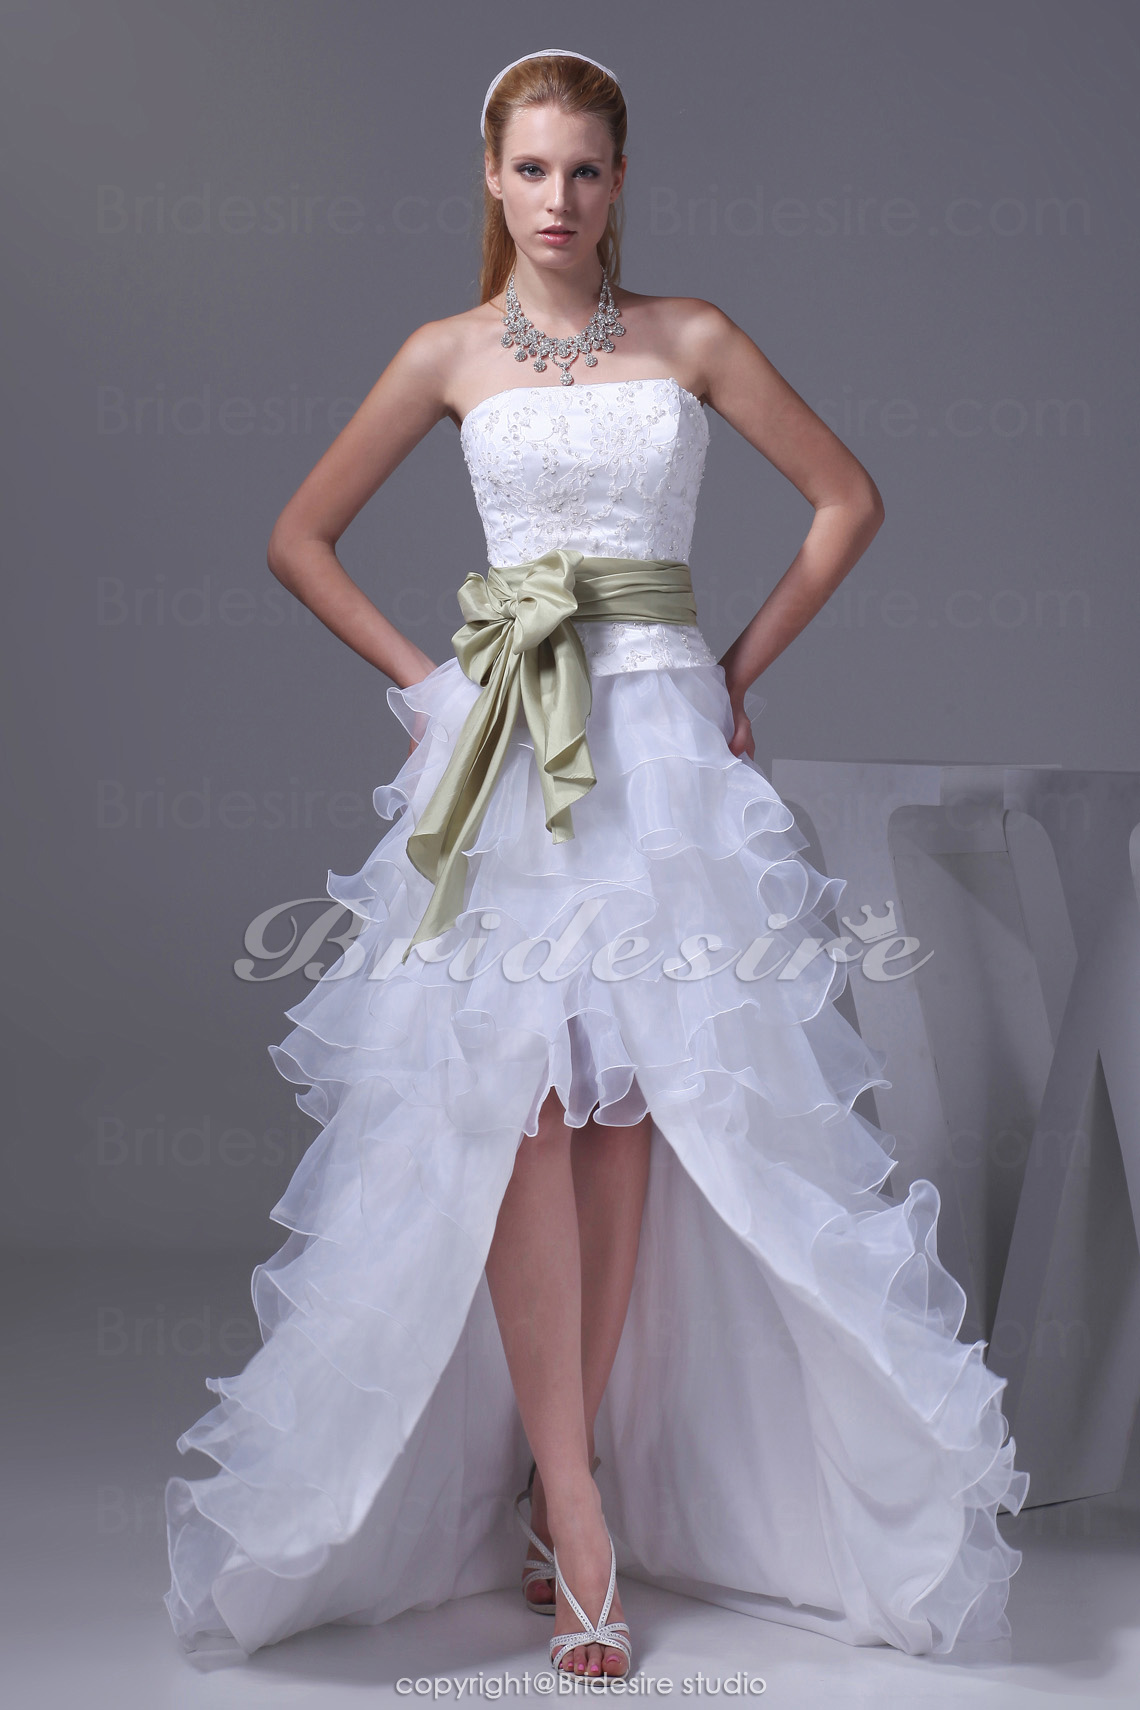 A-line Strapless Asymmetrical Court Train Sleeveless Organza Lace Taffeta Wedding Dress